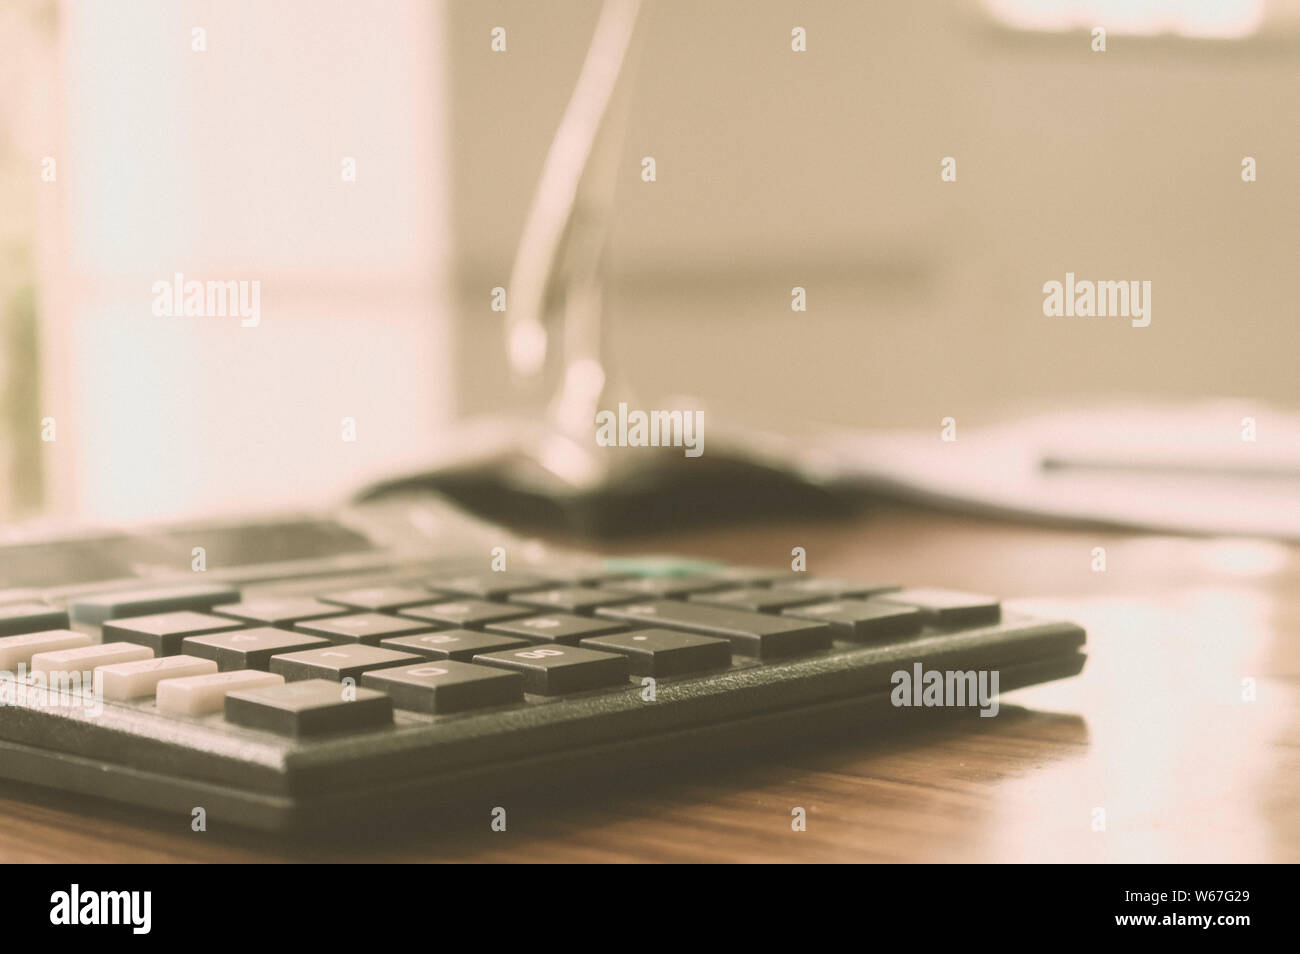 Close up of a calculator placed on office desk. A loan application form at a distance. Business Finance Concept. Vintage background. Isolated. Copy sp Stock Photo